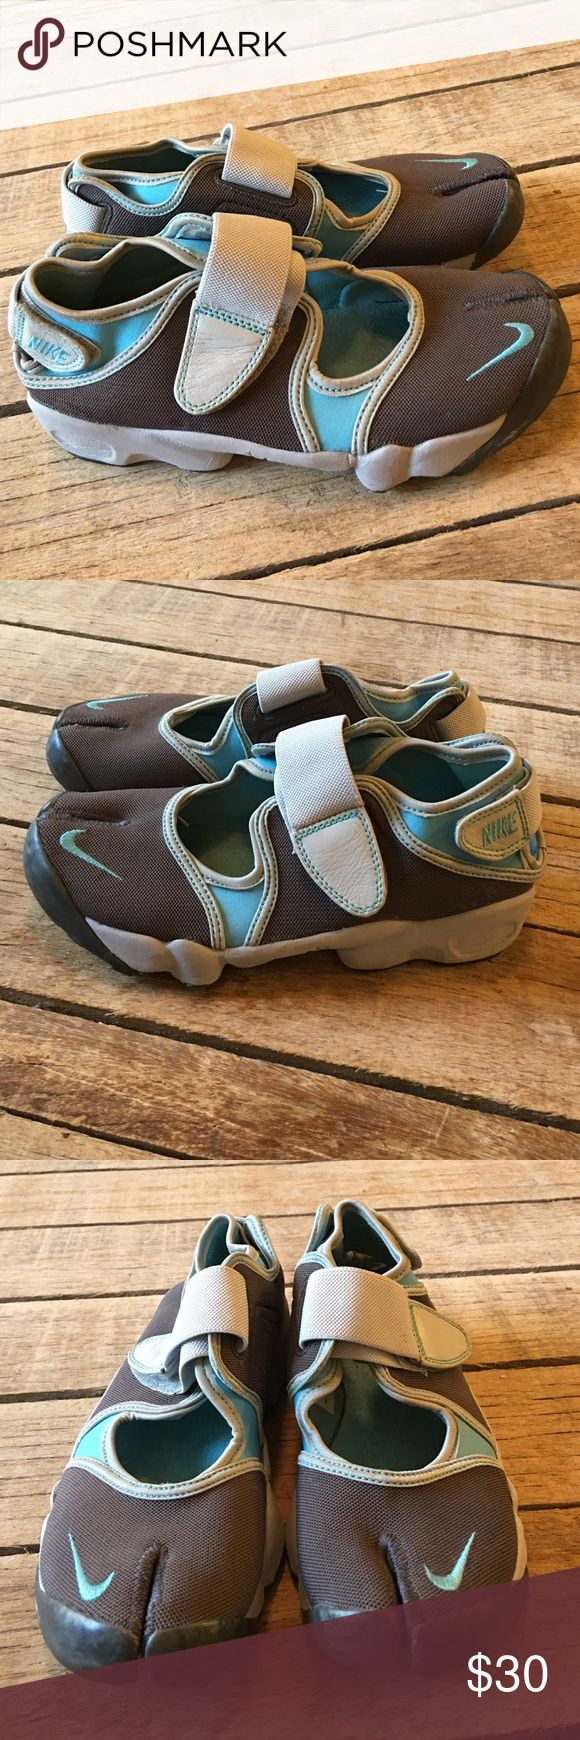 Nike Air Rift Split toe Mary Jane style shoe Nike Air Rift size 8 Split toe tennis shoe Mary Jane style. Two tone agua / brown nike Shoes Athletic Shoes